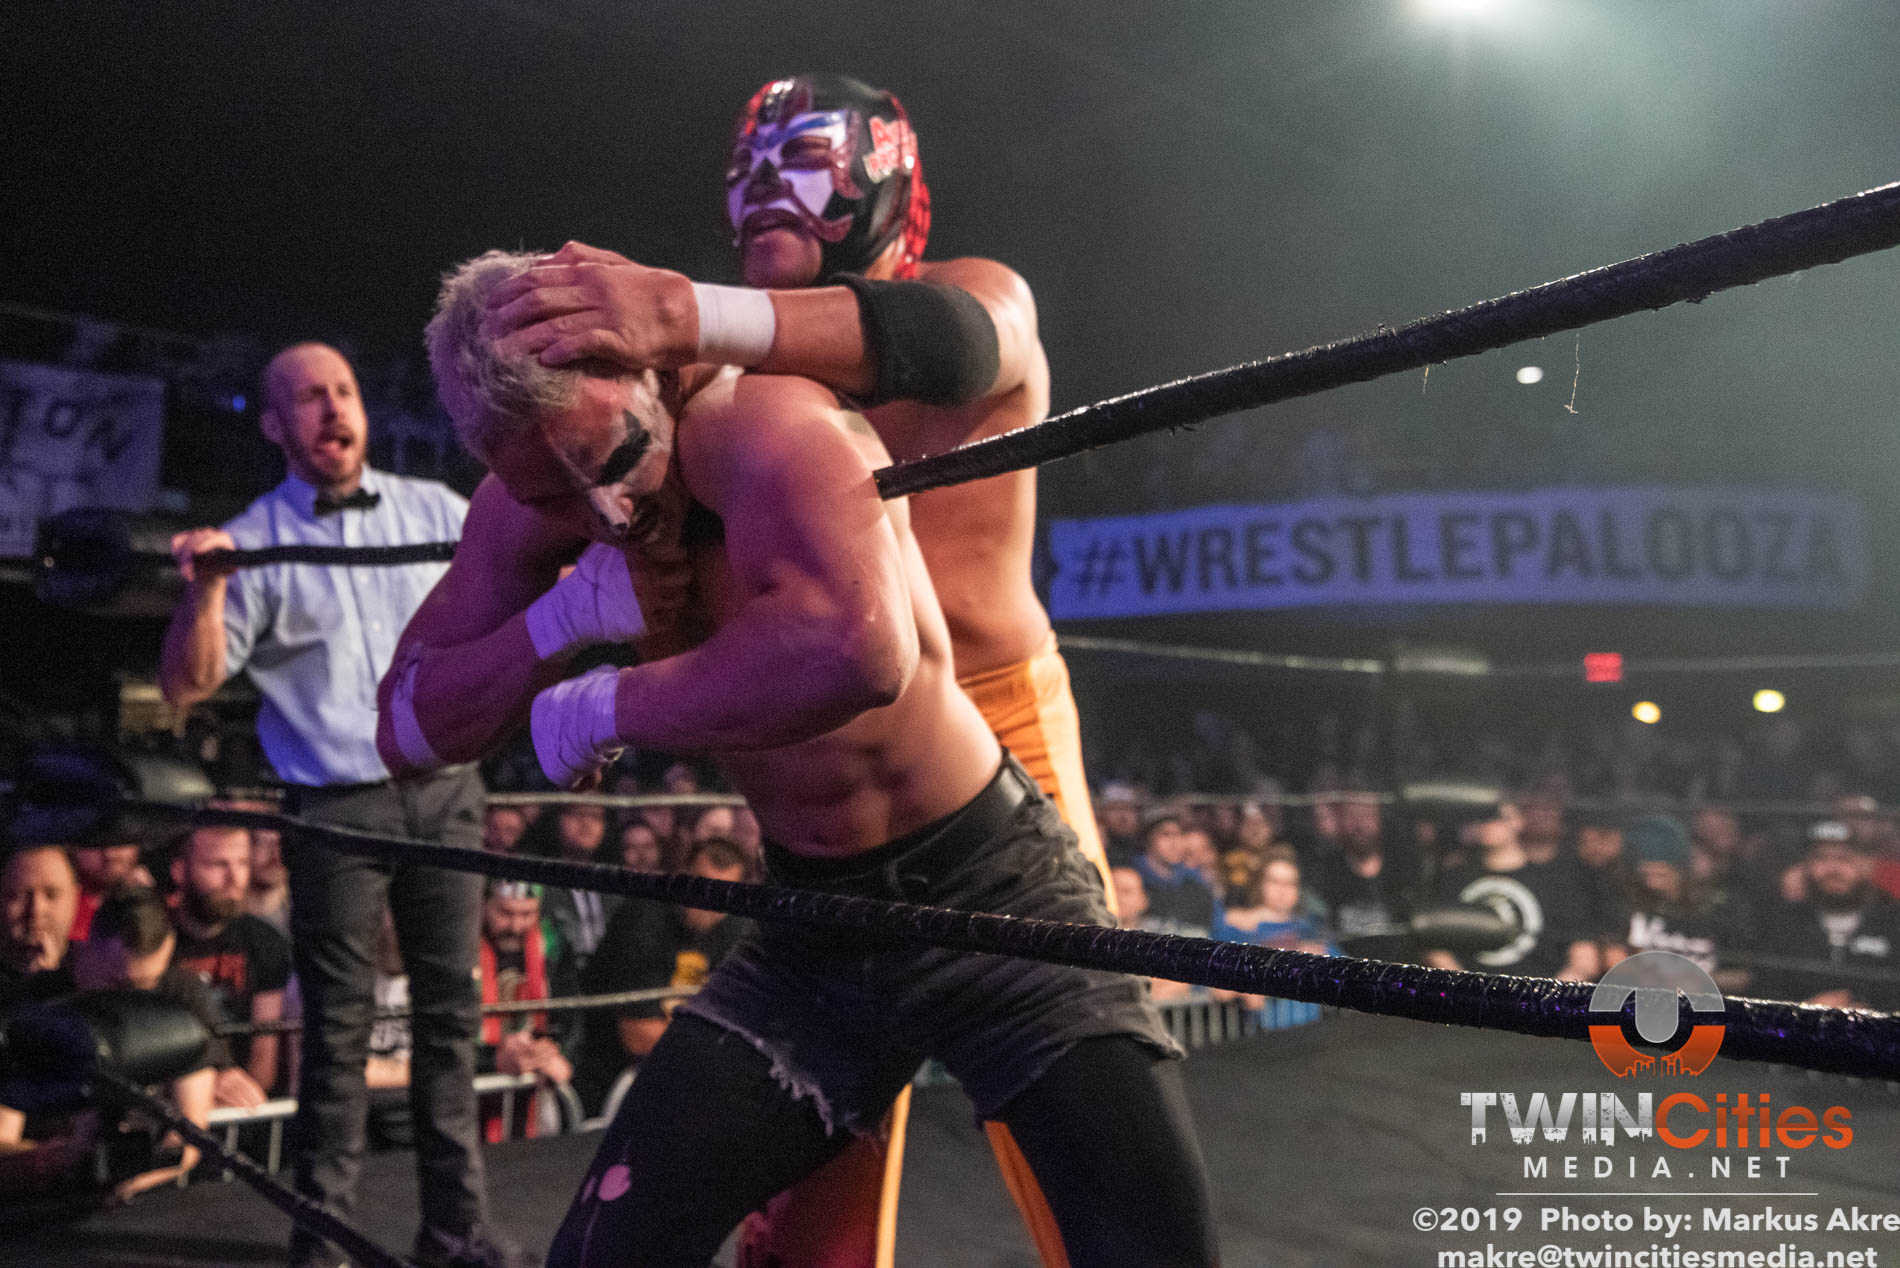 Wrestlepalooza - Match 5-11